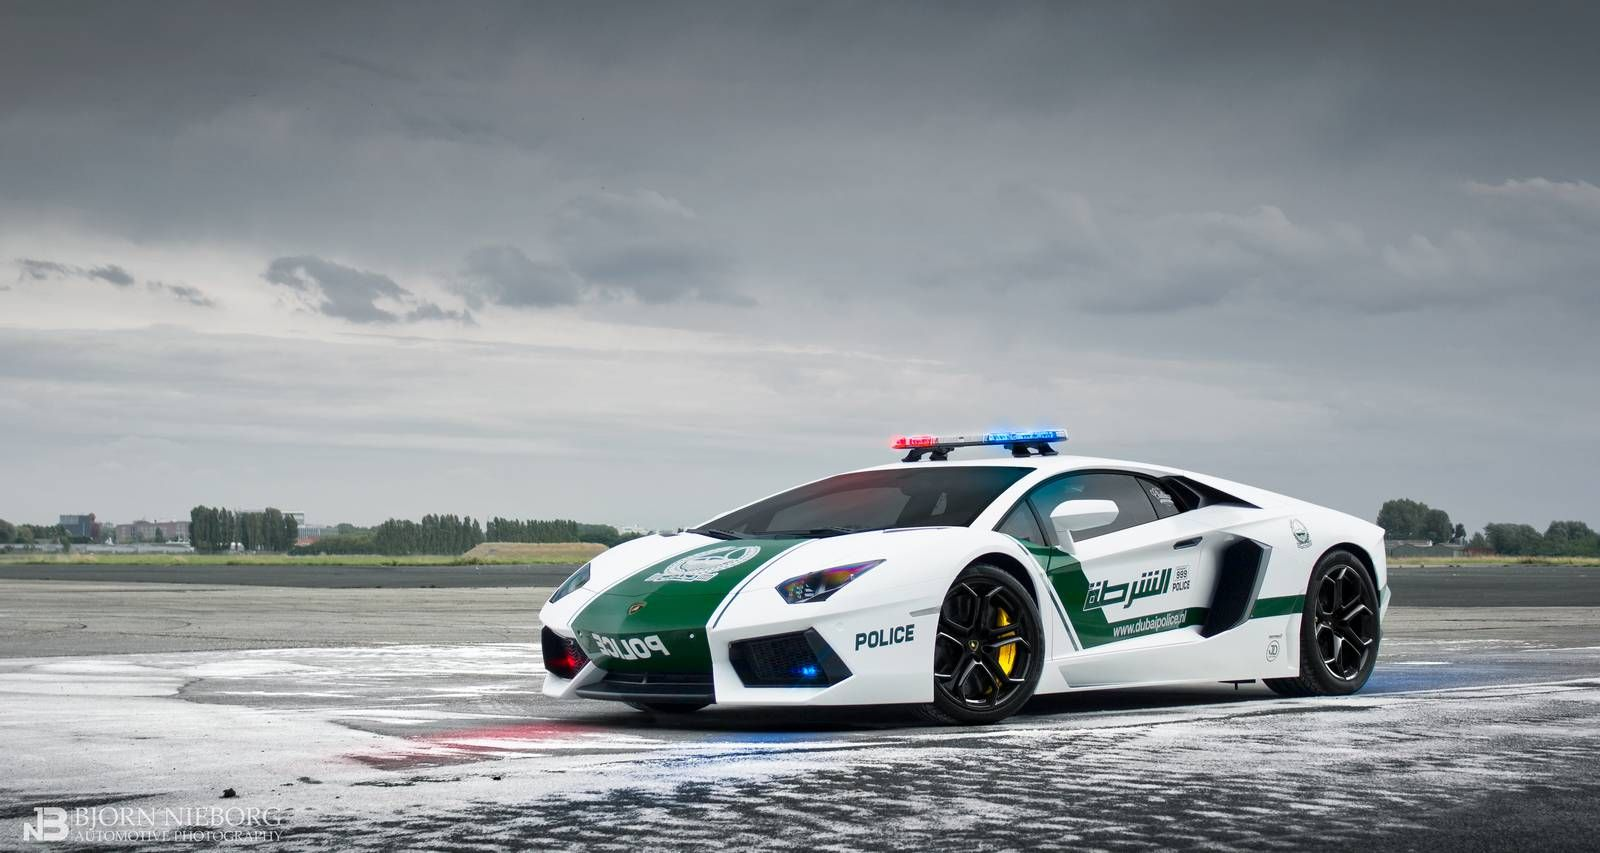 Take A Look At The World S Fastest Police Fleet Dubai Http Www Motorverso Com P 11206 Super Cars Police Cars Police